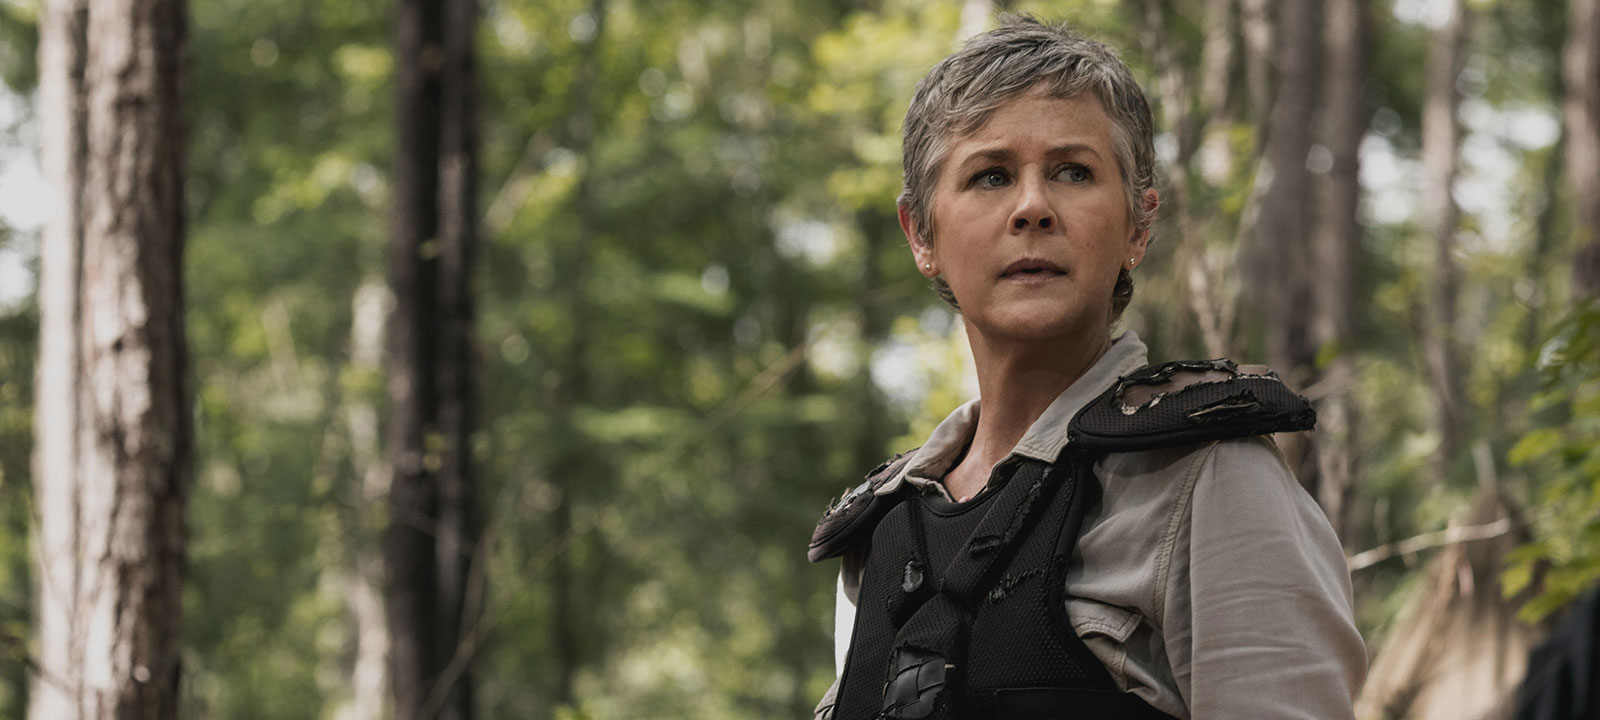 the-walking-dead-episode-902-carol-mcbride-1200×707-interview